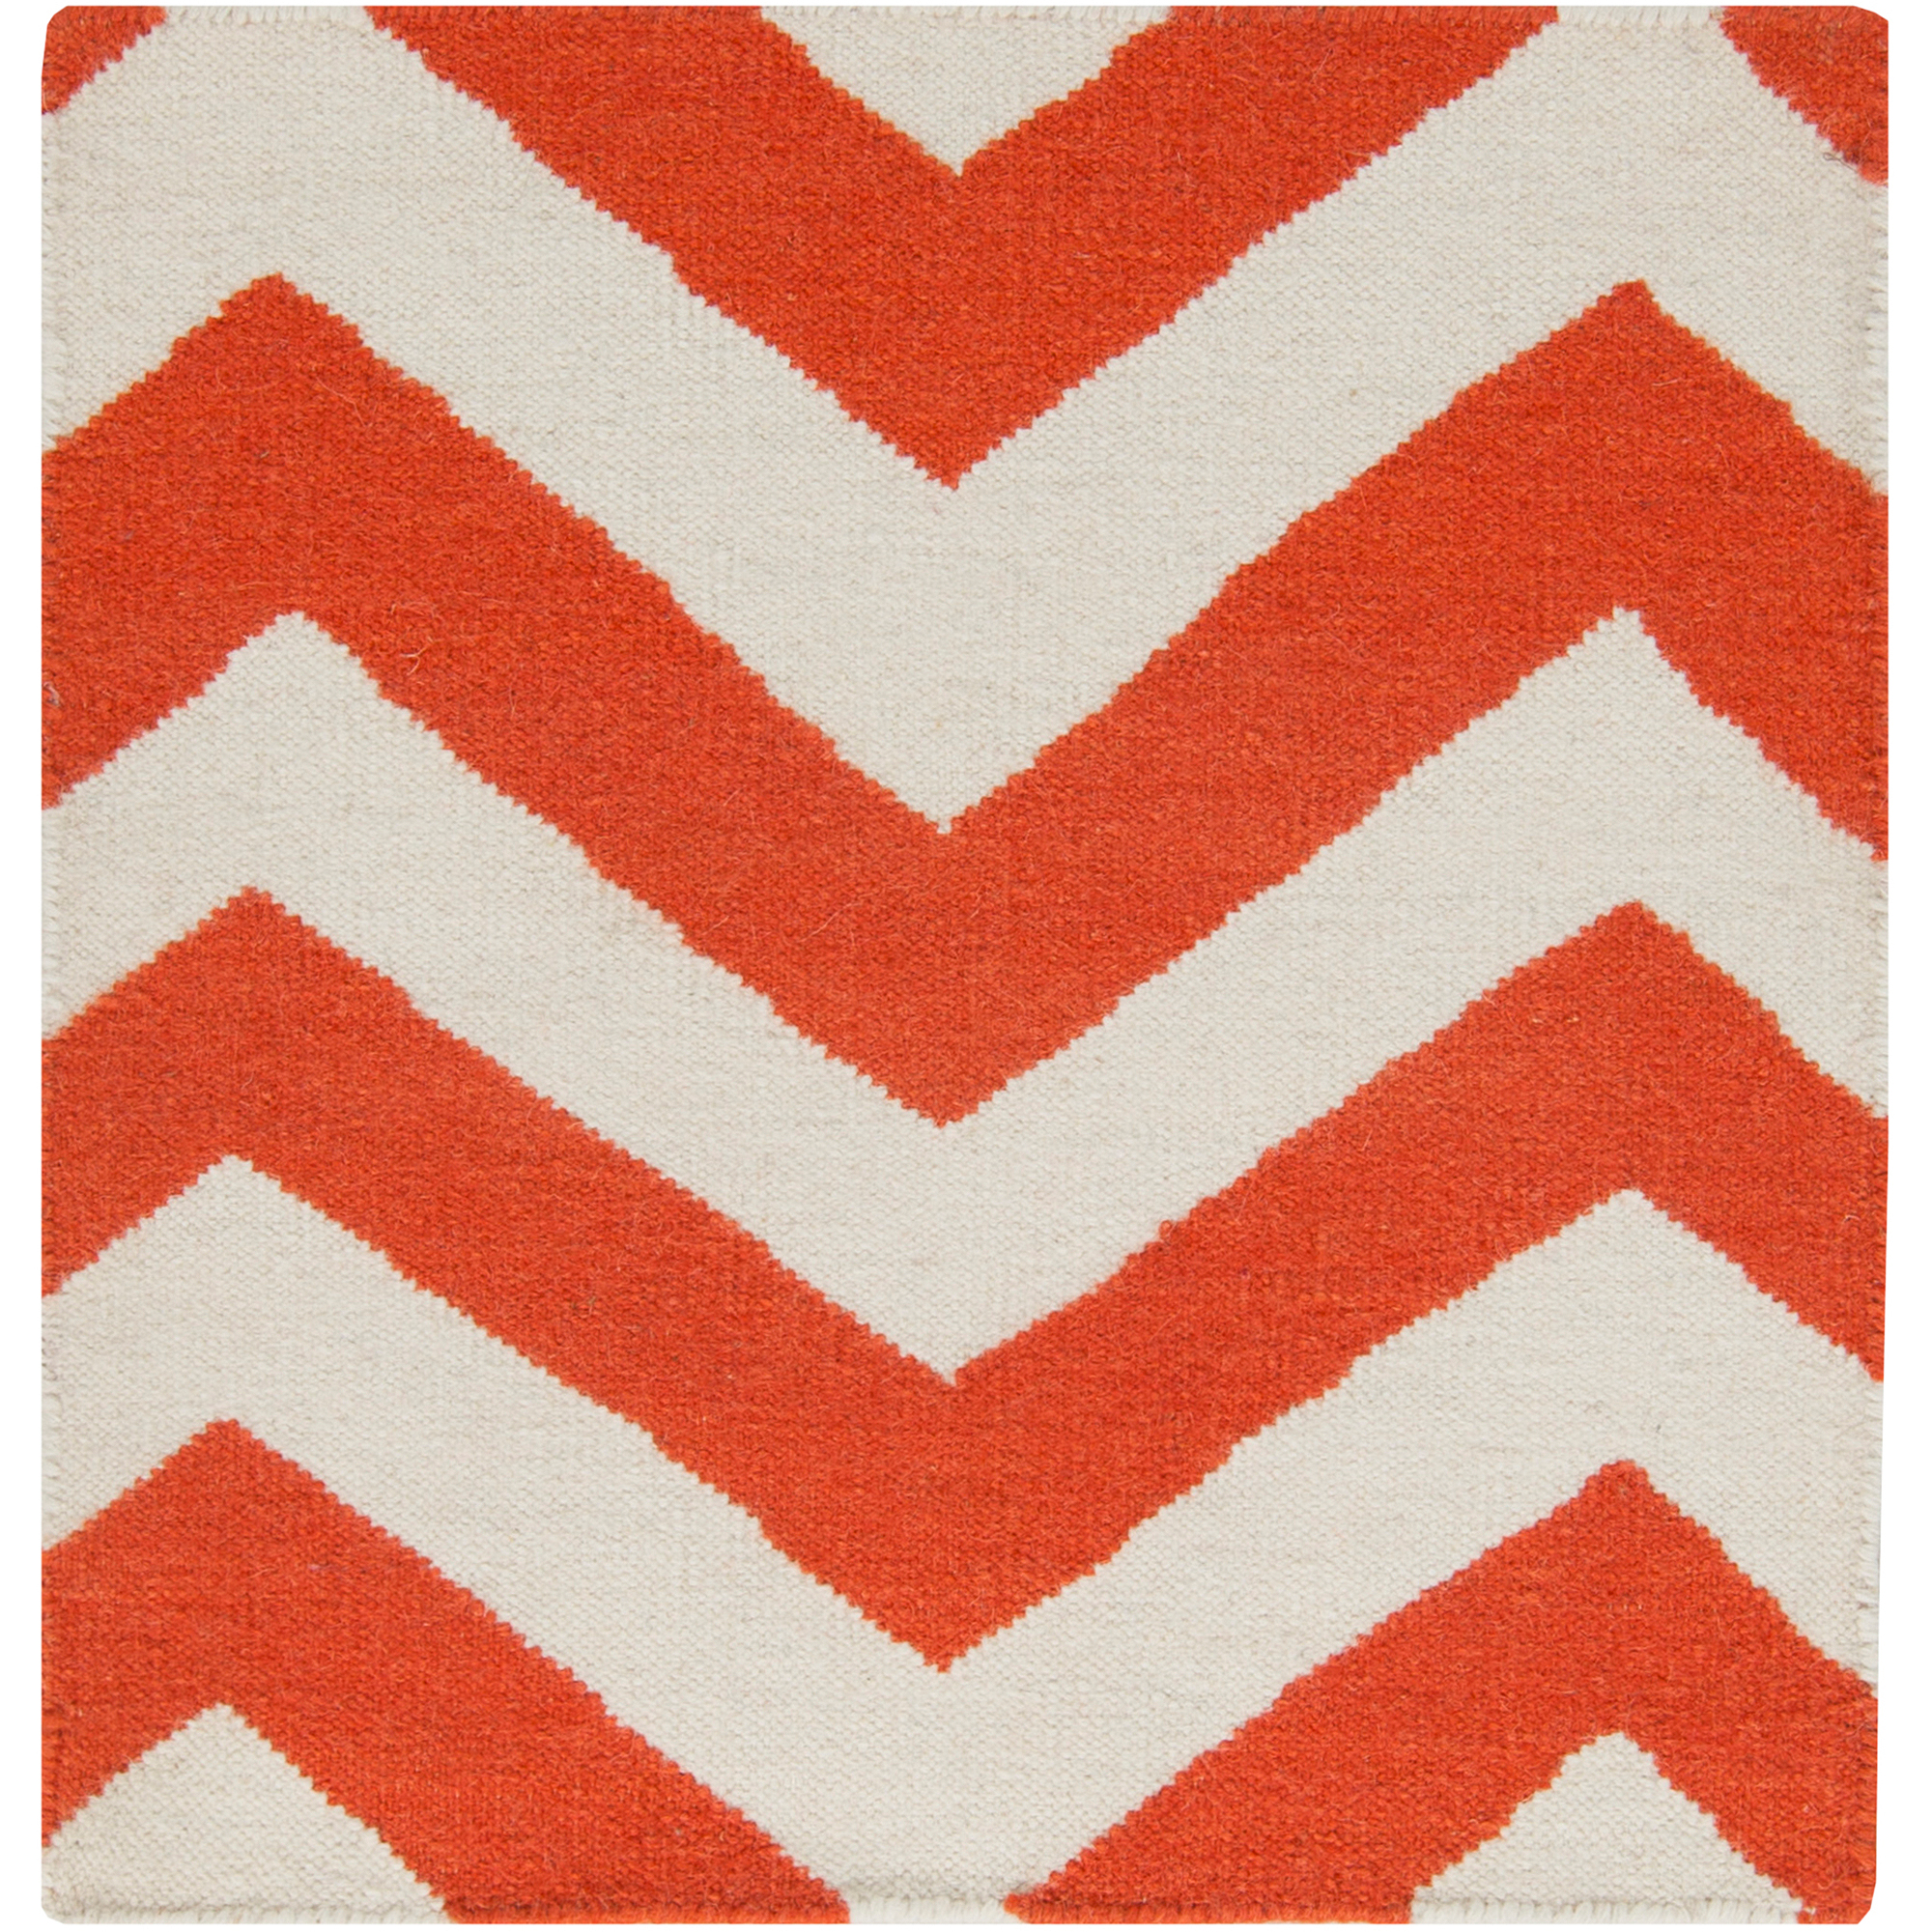 Libby Langdon Laughlin Hand Woven Chic Chevron Flatweave Wool Runner, Rust